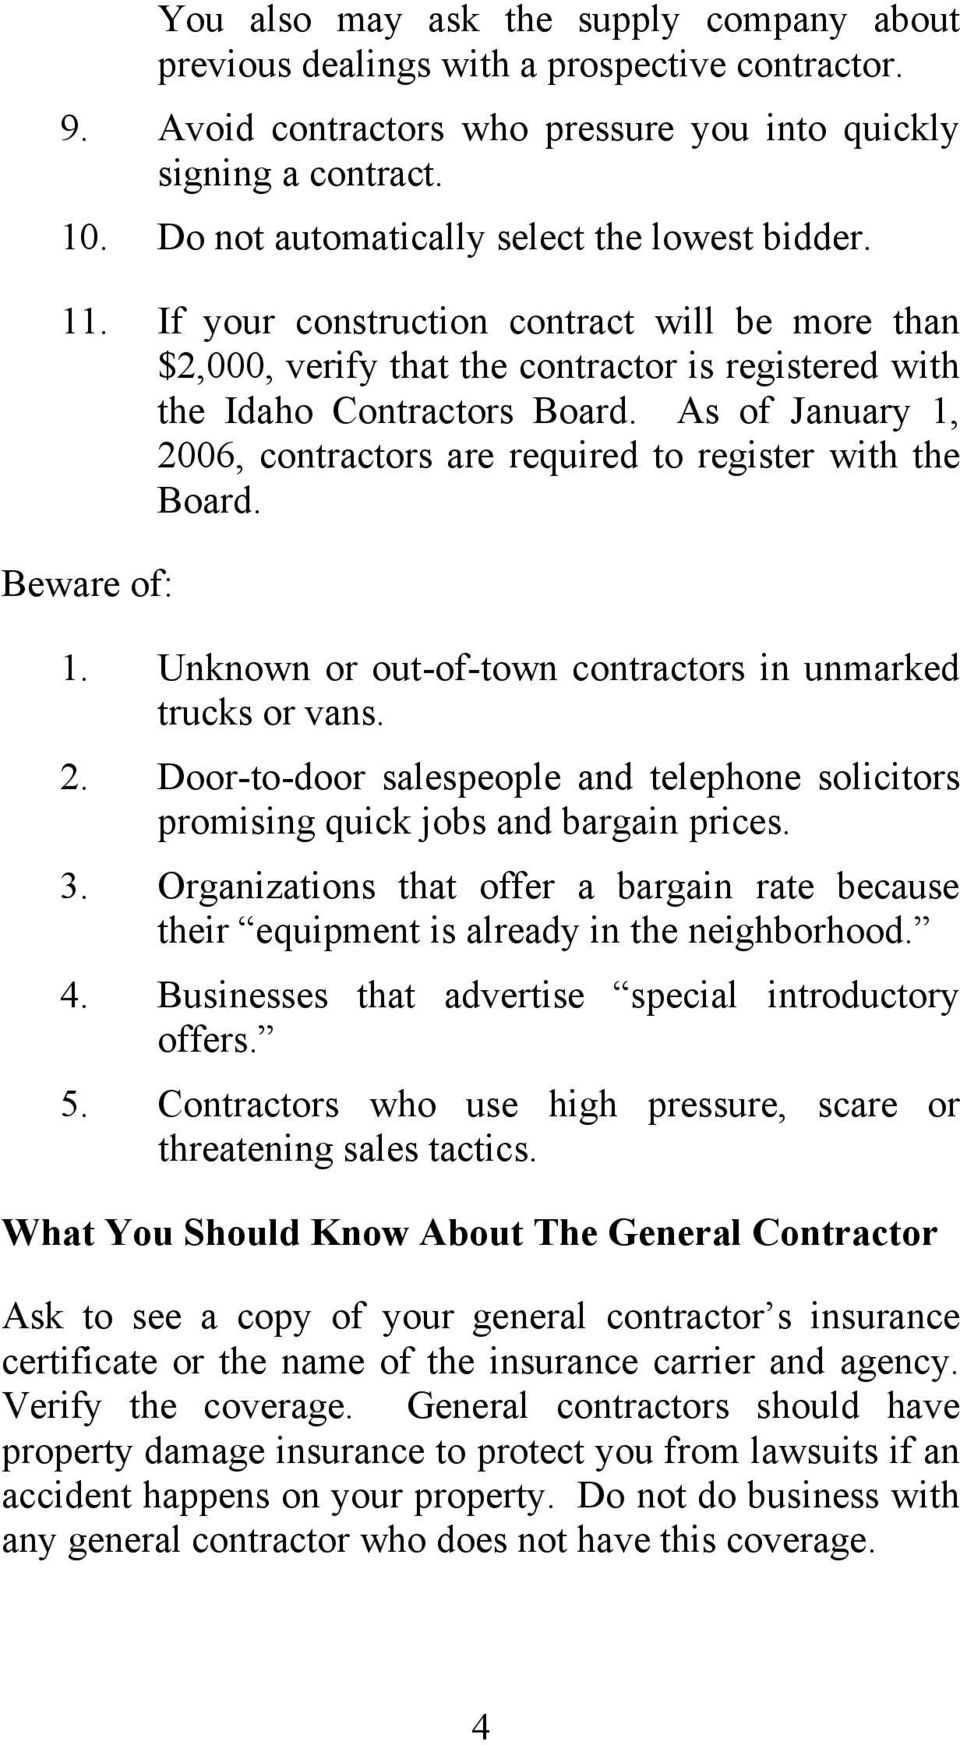 As of January 1, 2006, contractors are required to register with the Board. Beware of: 1. Unknown or out-of-town contractors in unmarked trucks or vans. 2. Door-to-door salespeople and telephone solicitors promising quick jobs and bargain prices.